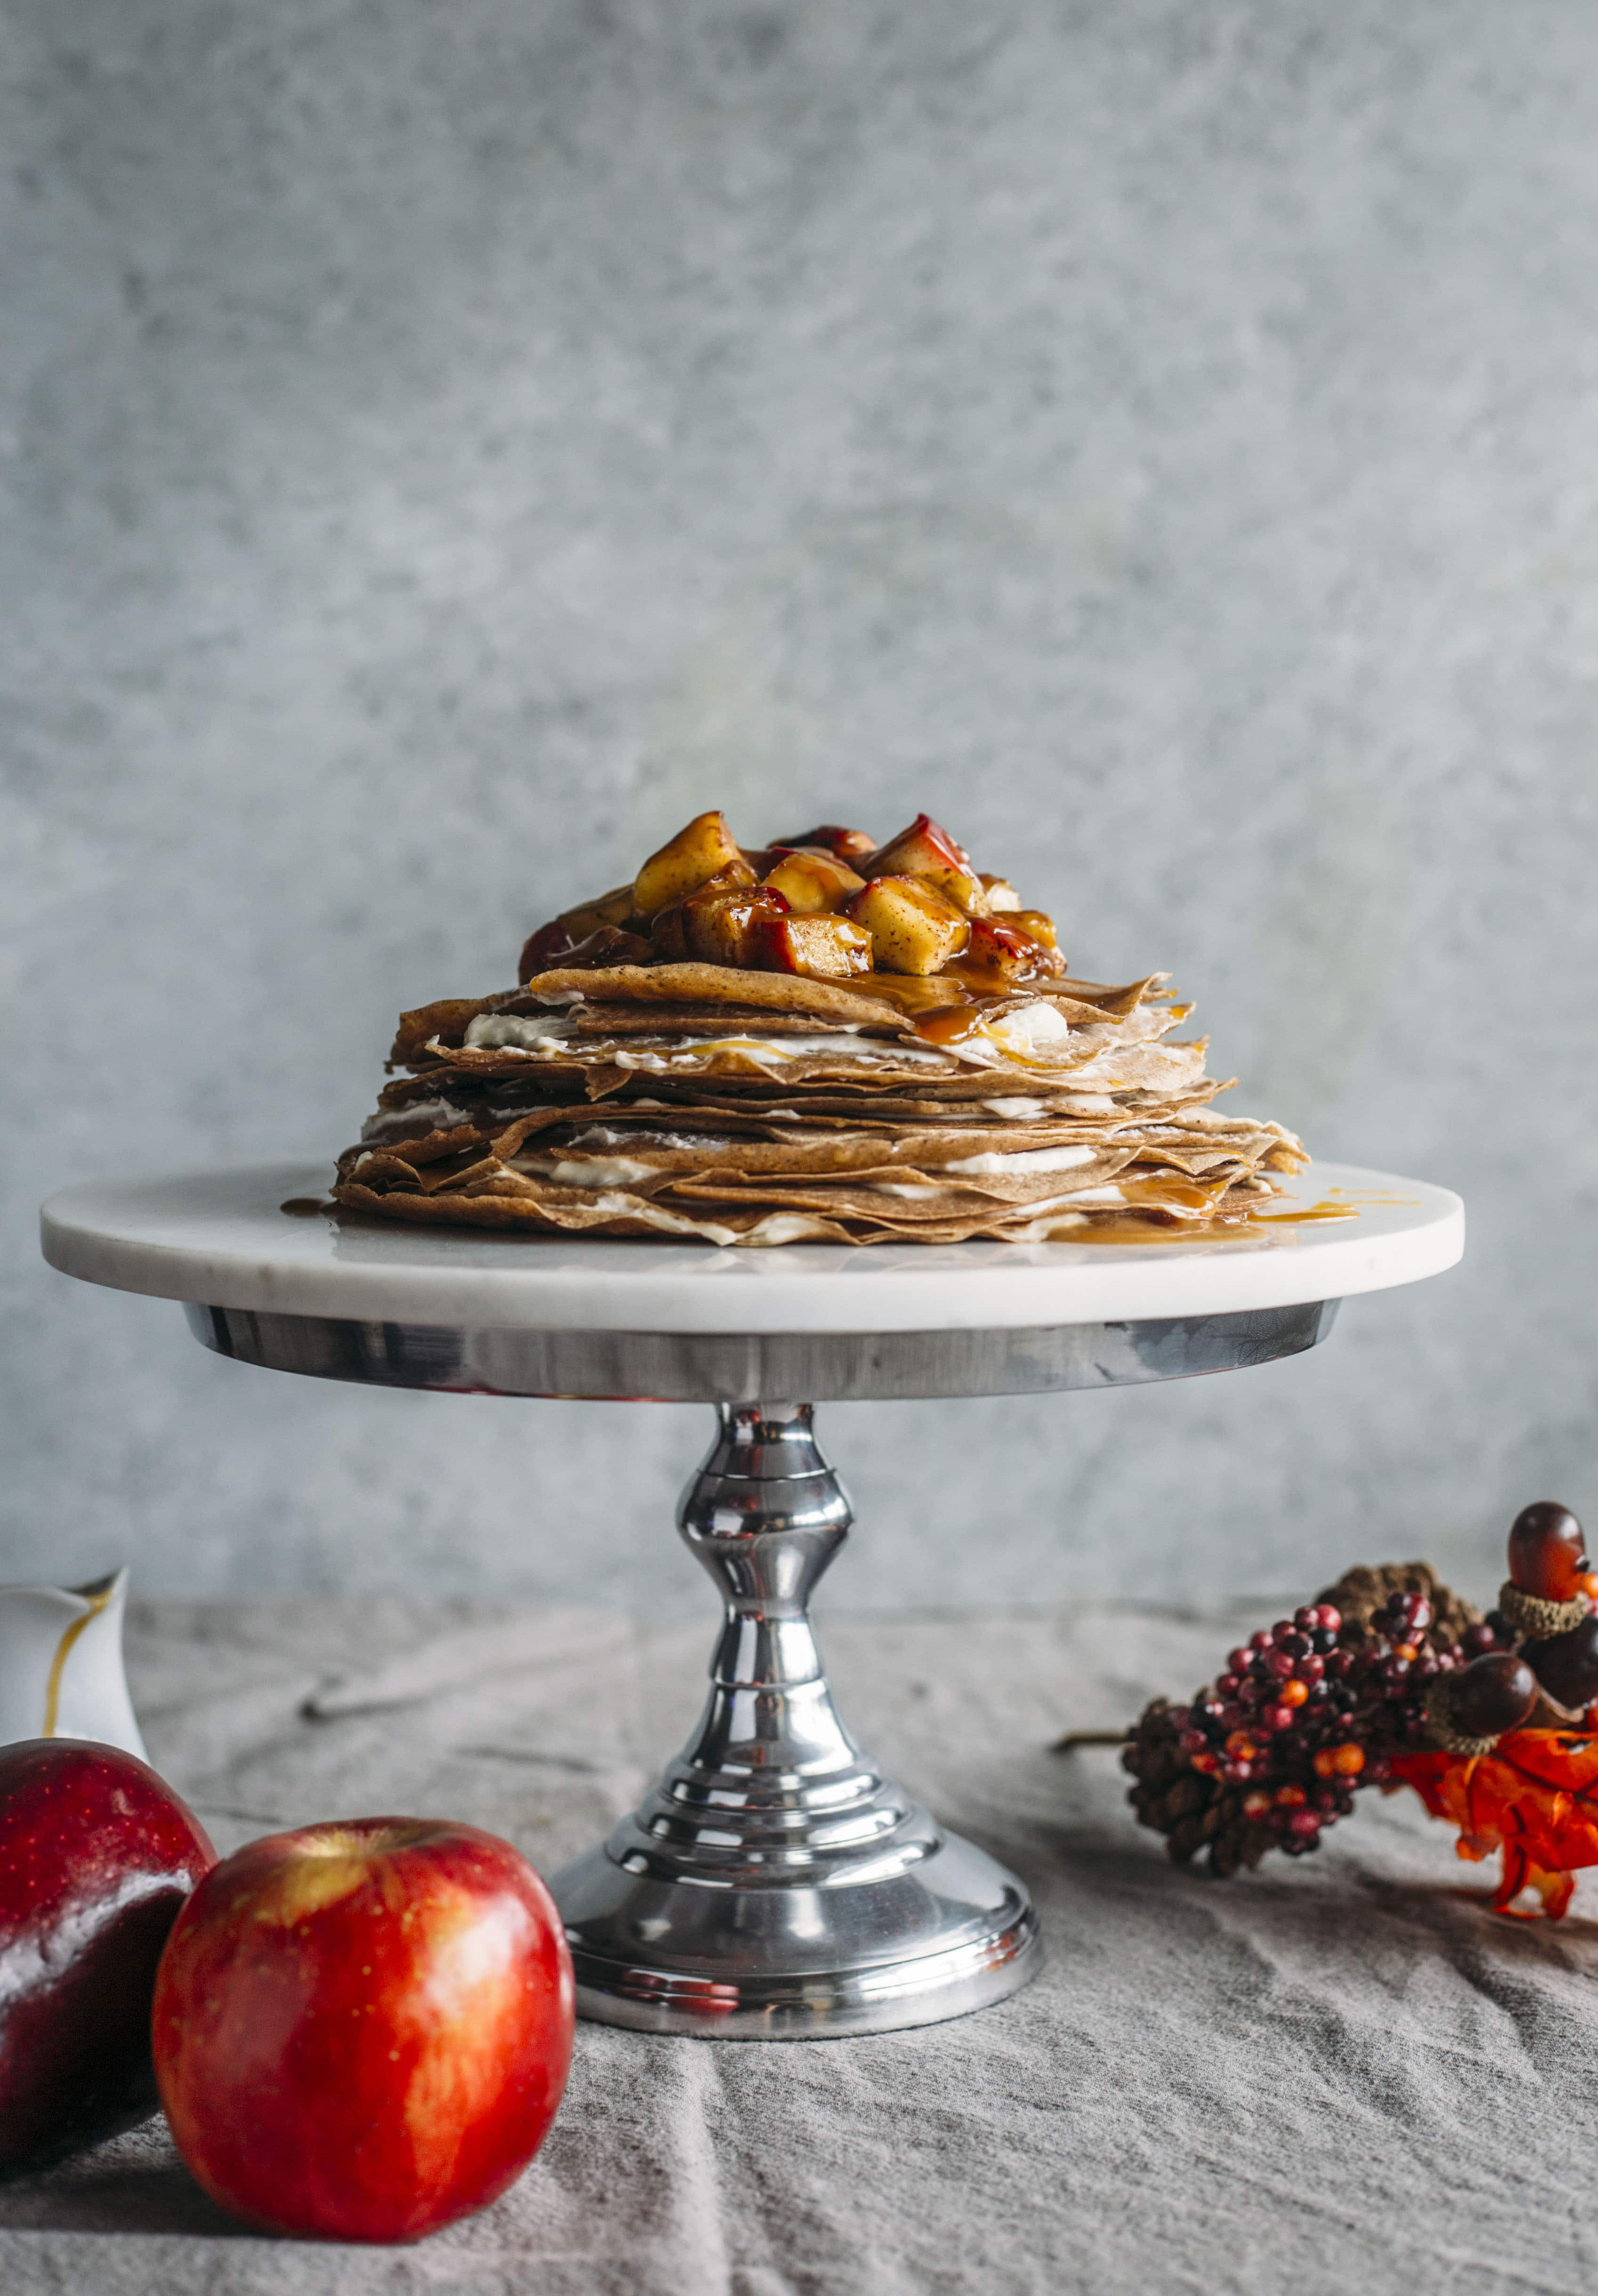 Caramel Apple Crepe Cake | Crepes filled with mascarpone cheese and topped with apples and a healthier caramel sauce! | thealmondeater.com